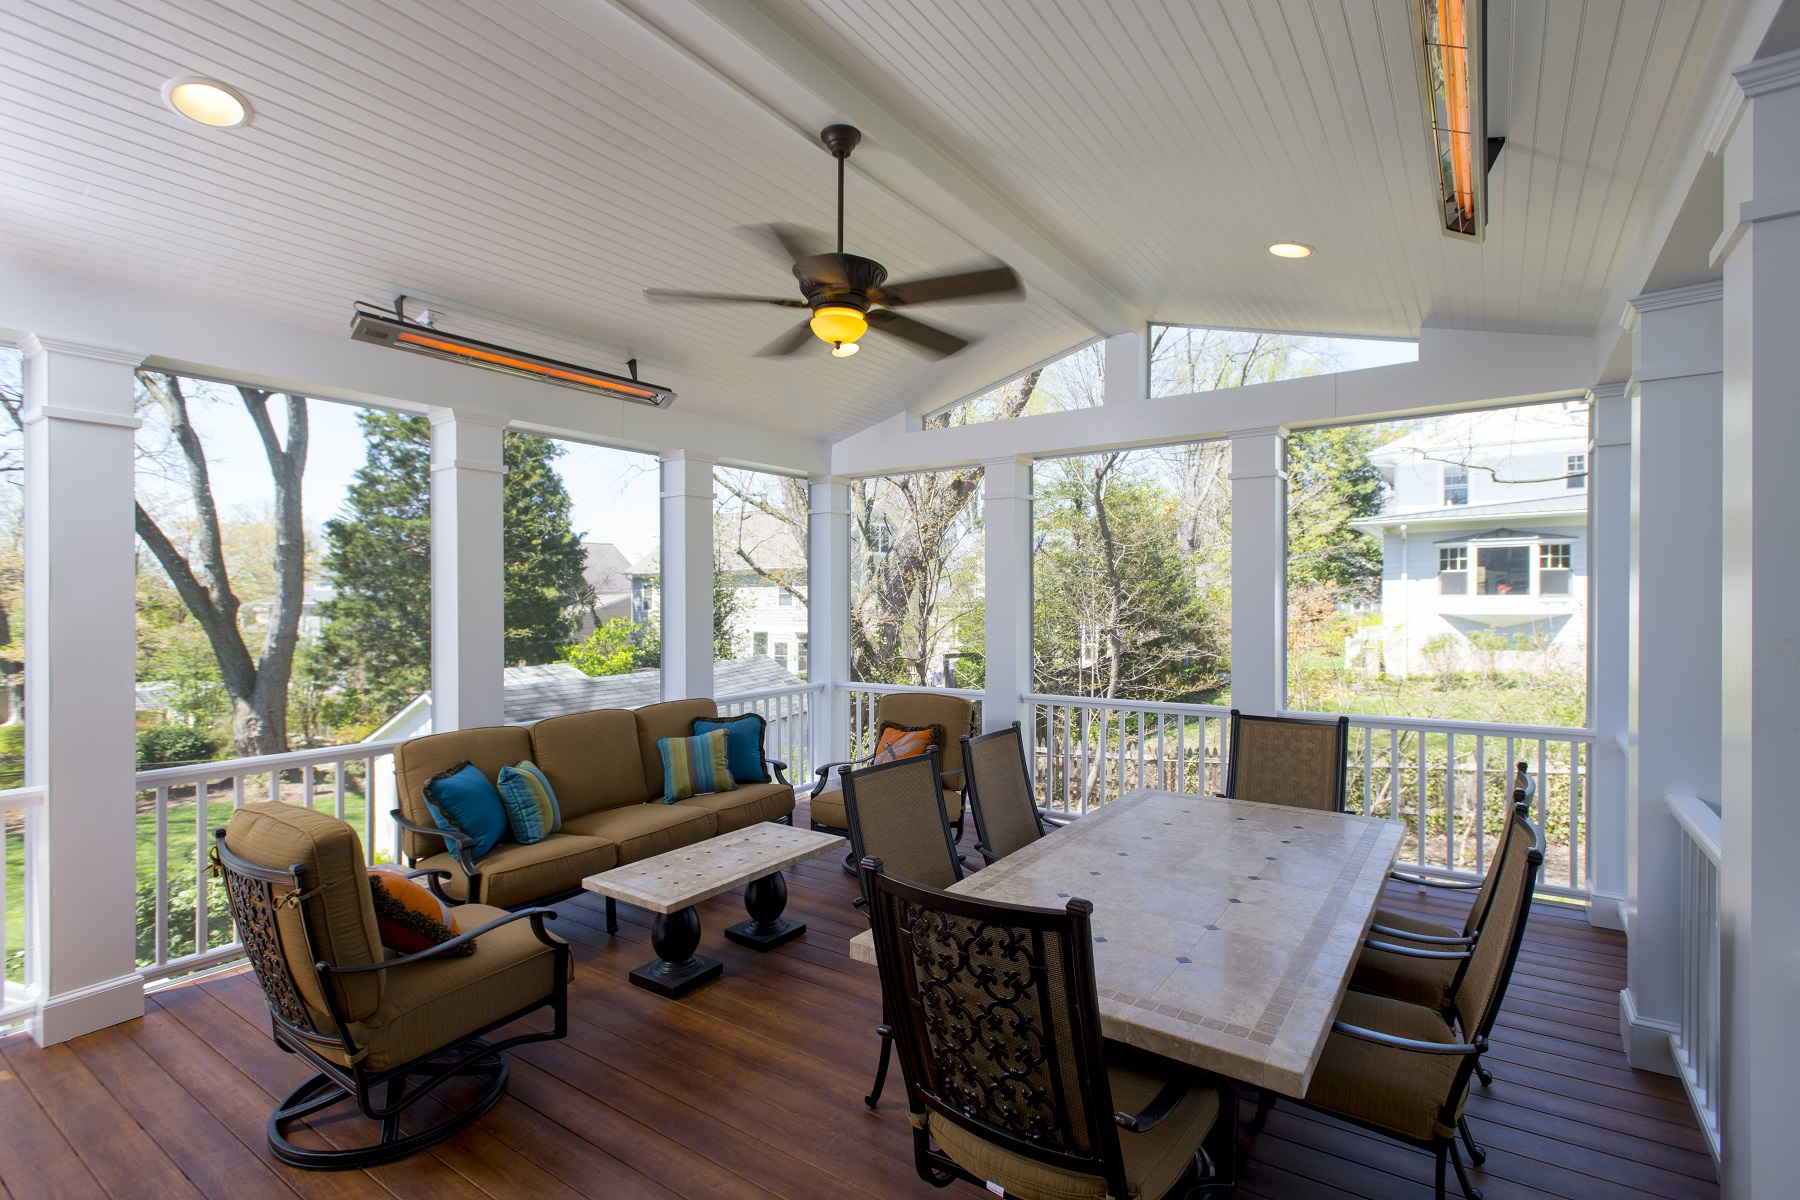 screened porch by design builders, inc in maryland